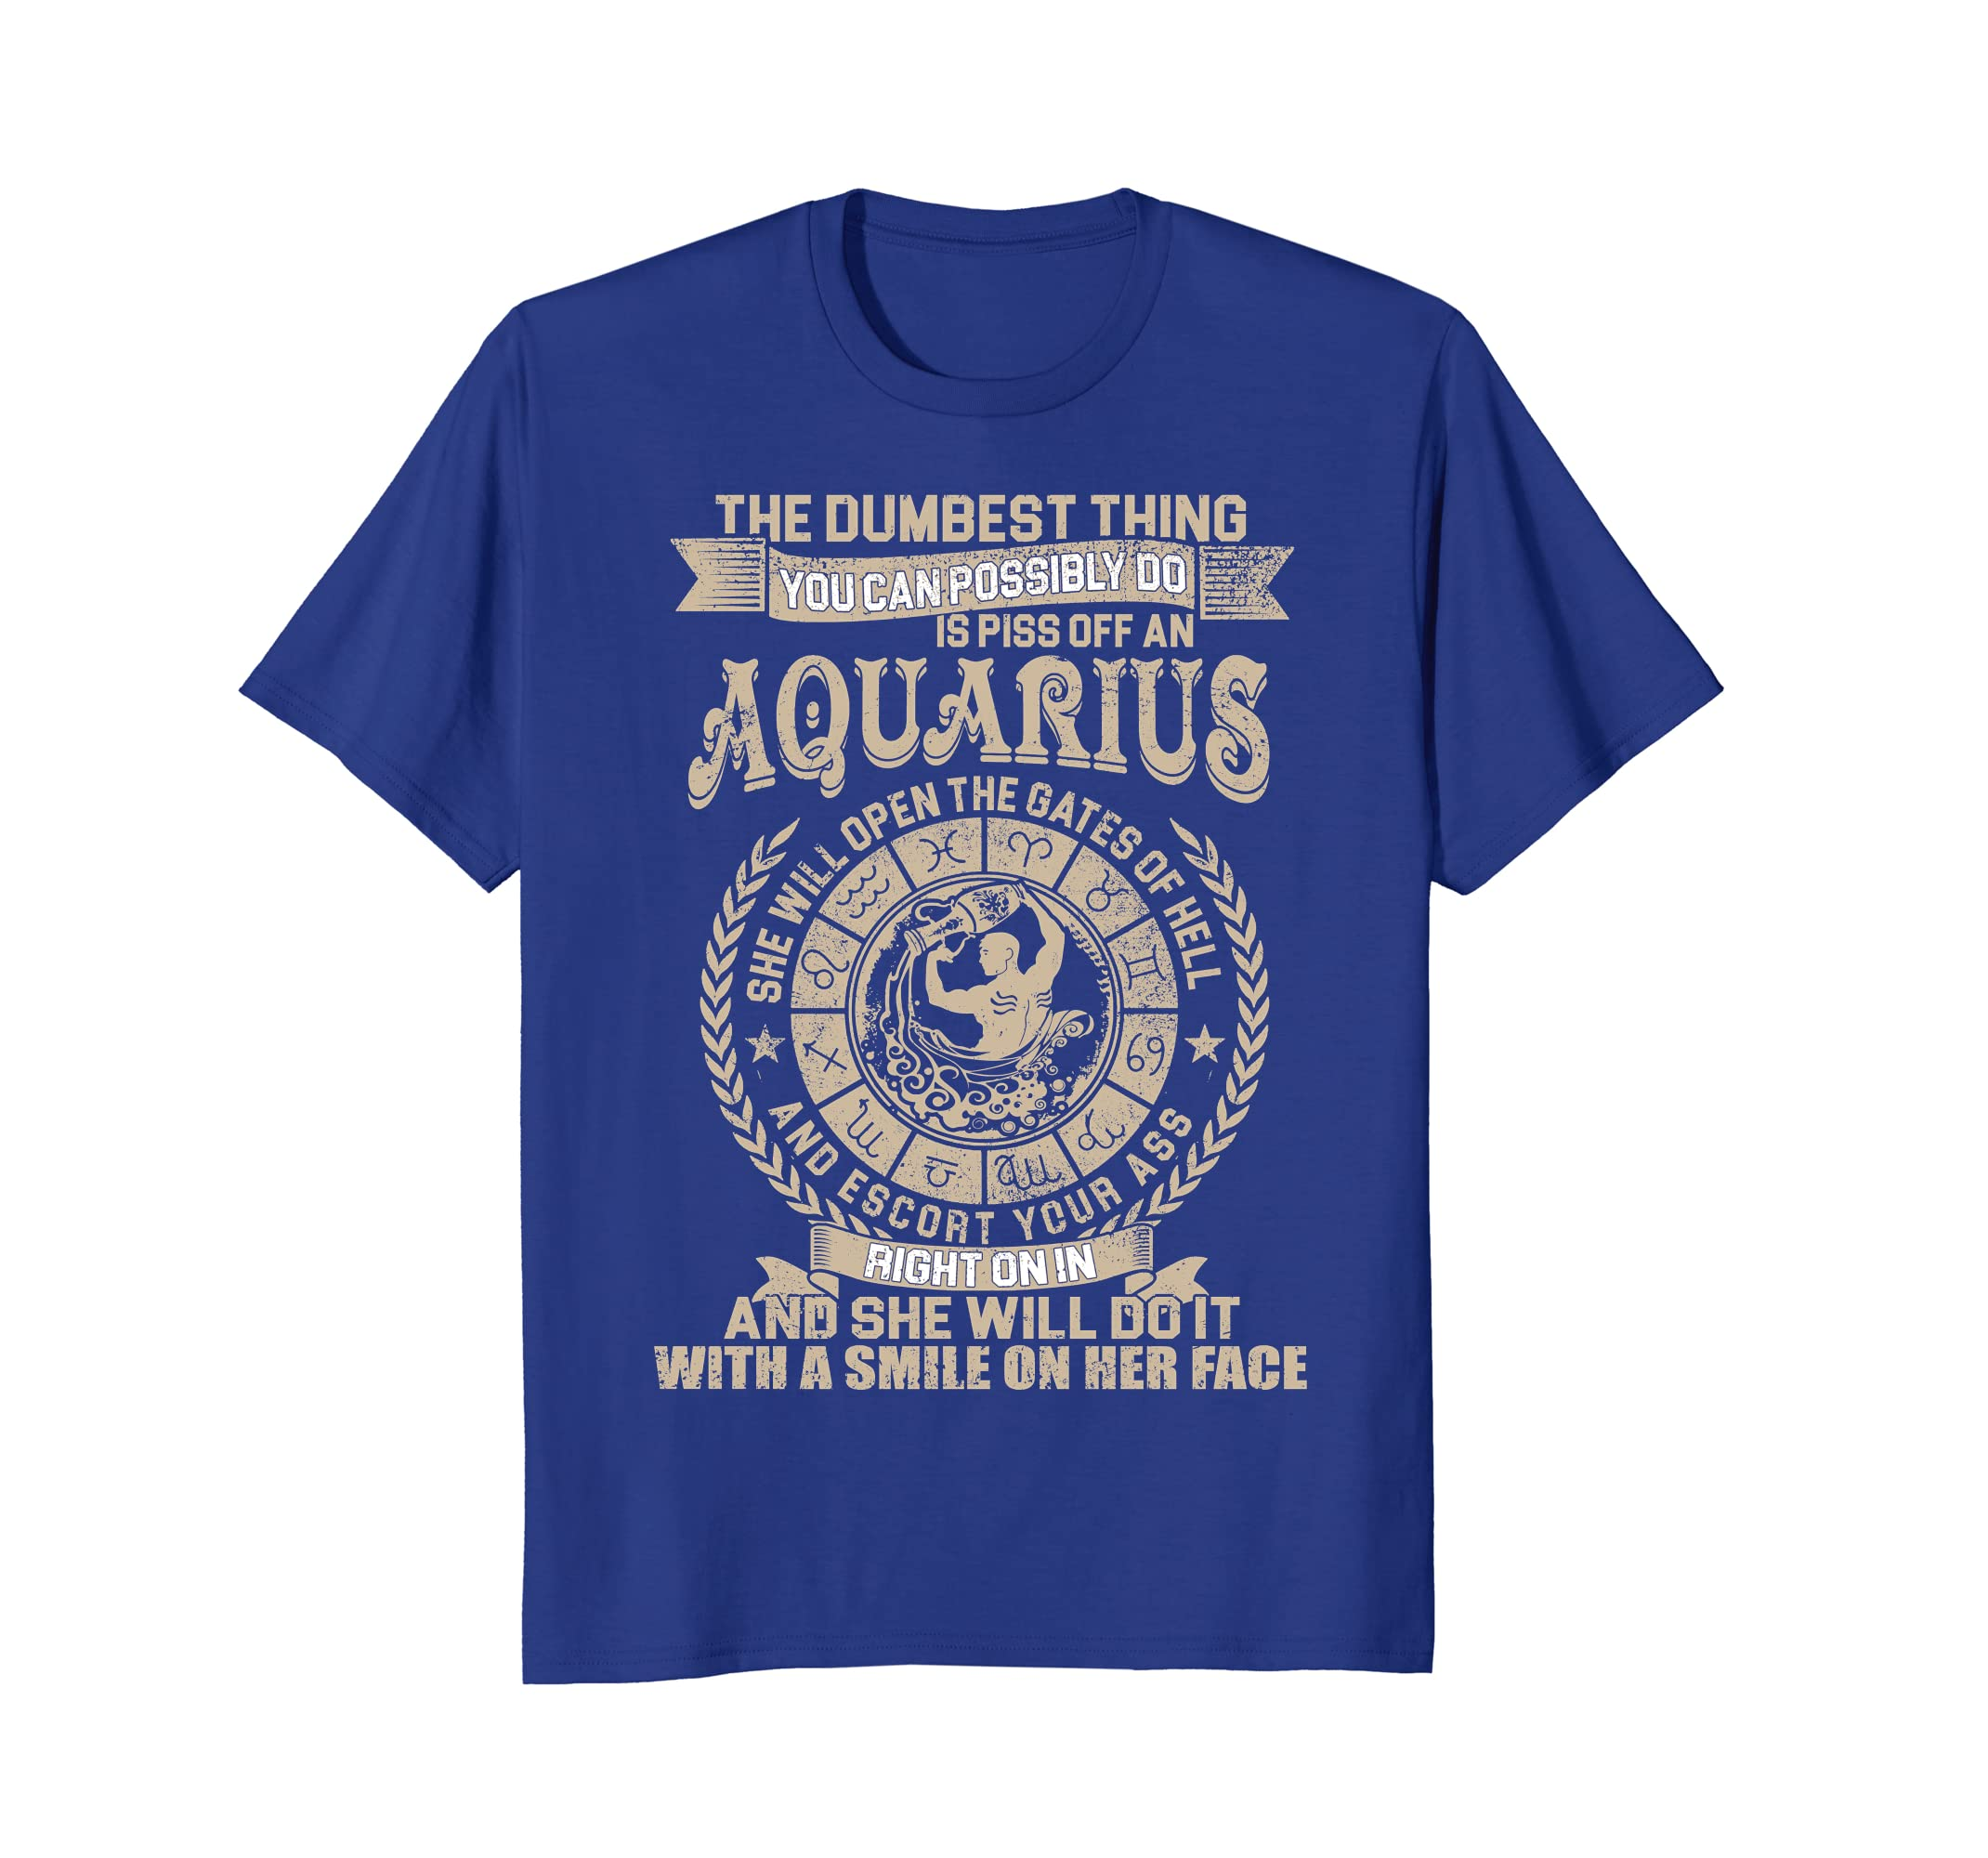 Amazon com: The Dumbest Thing Is Piss Off An Aquarius Woman